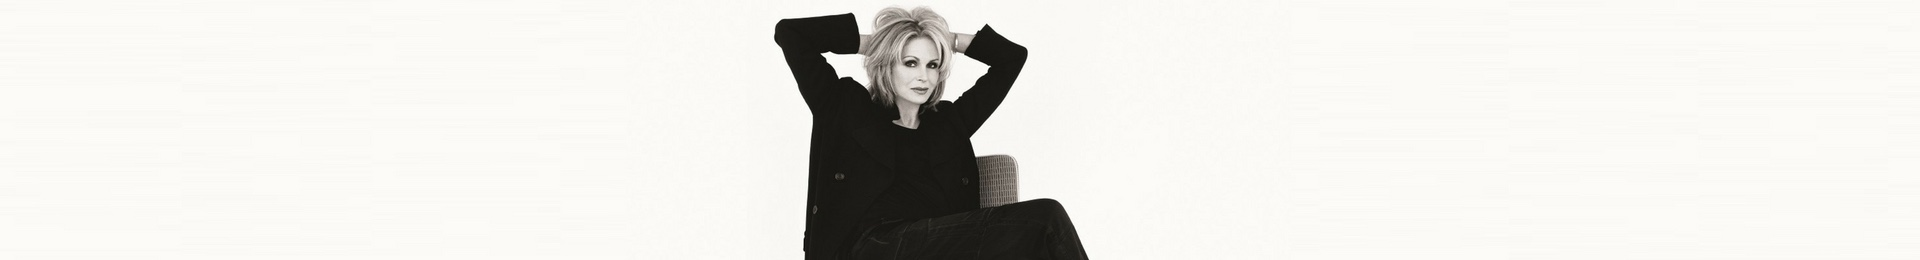 Joanna Lumley at the Theatre Royal Drury Lane Tickets London